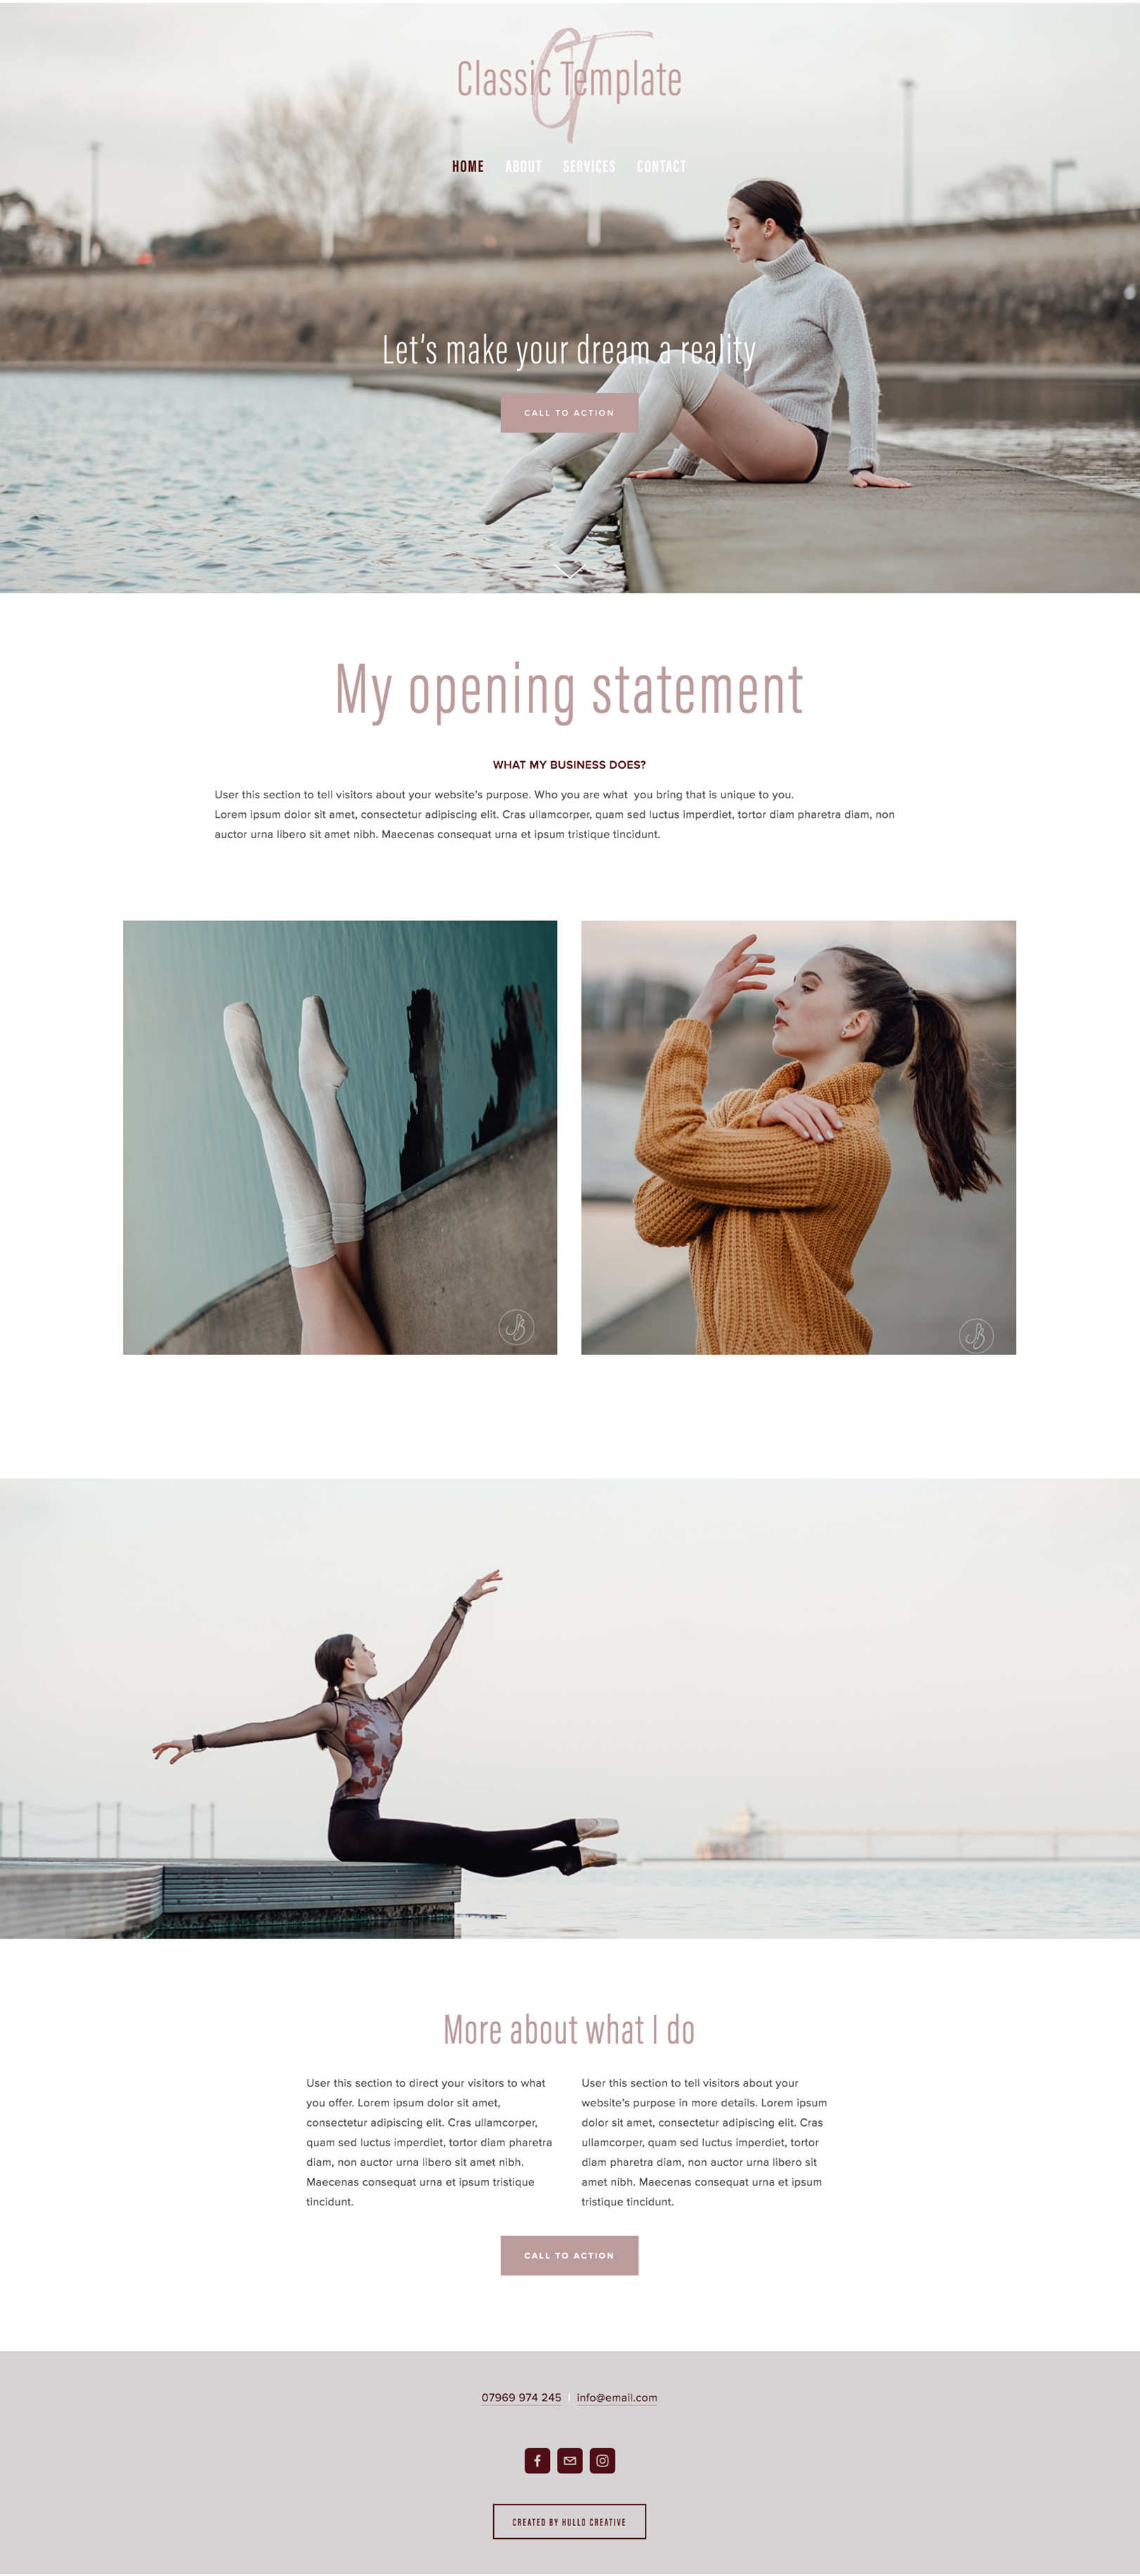 screencapture-classic-template-hullo-squarespace-services-2019-07-24-15_27_50.png